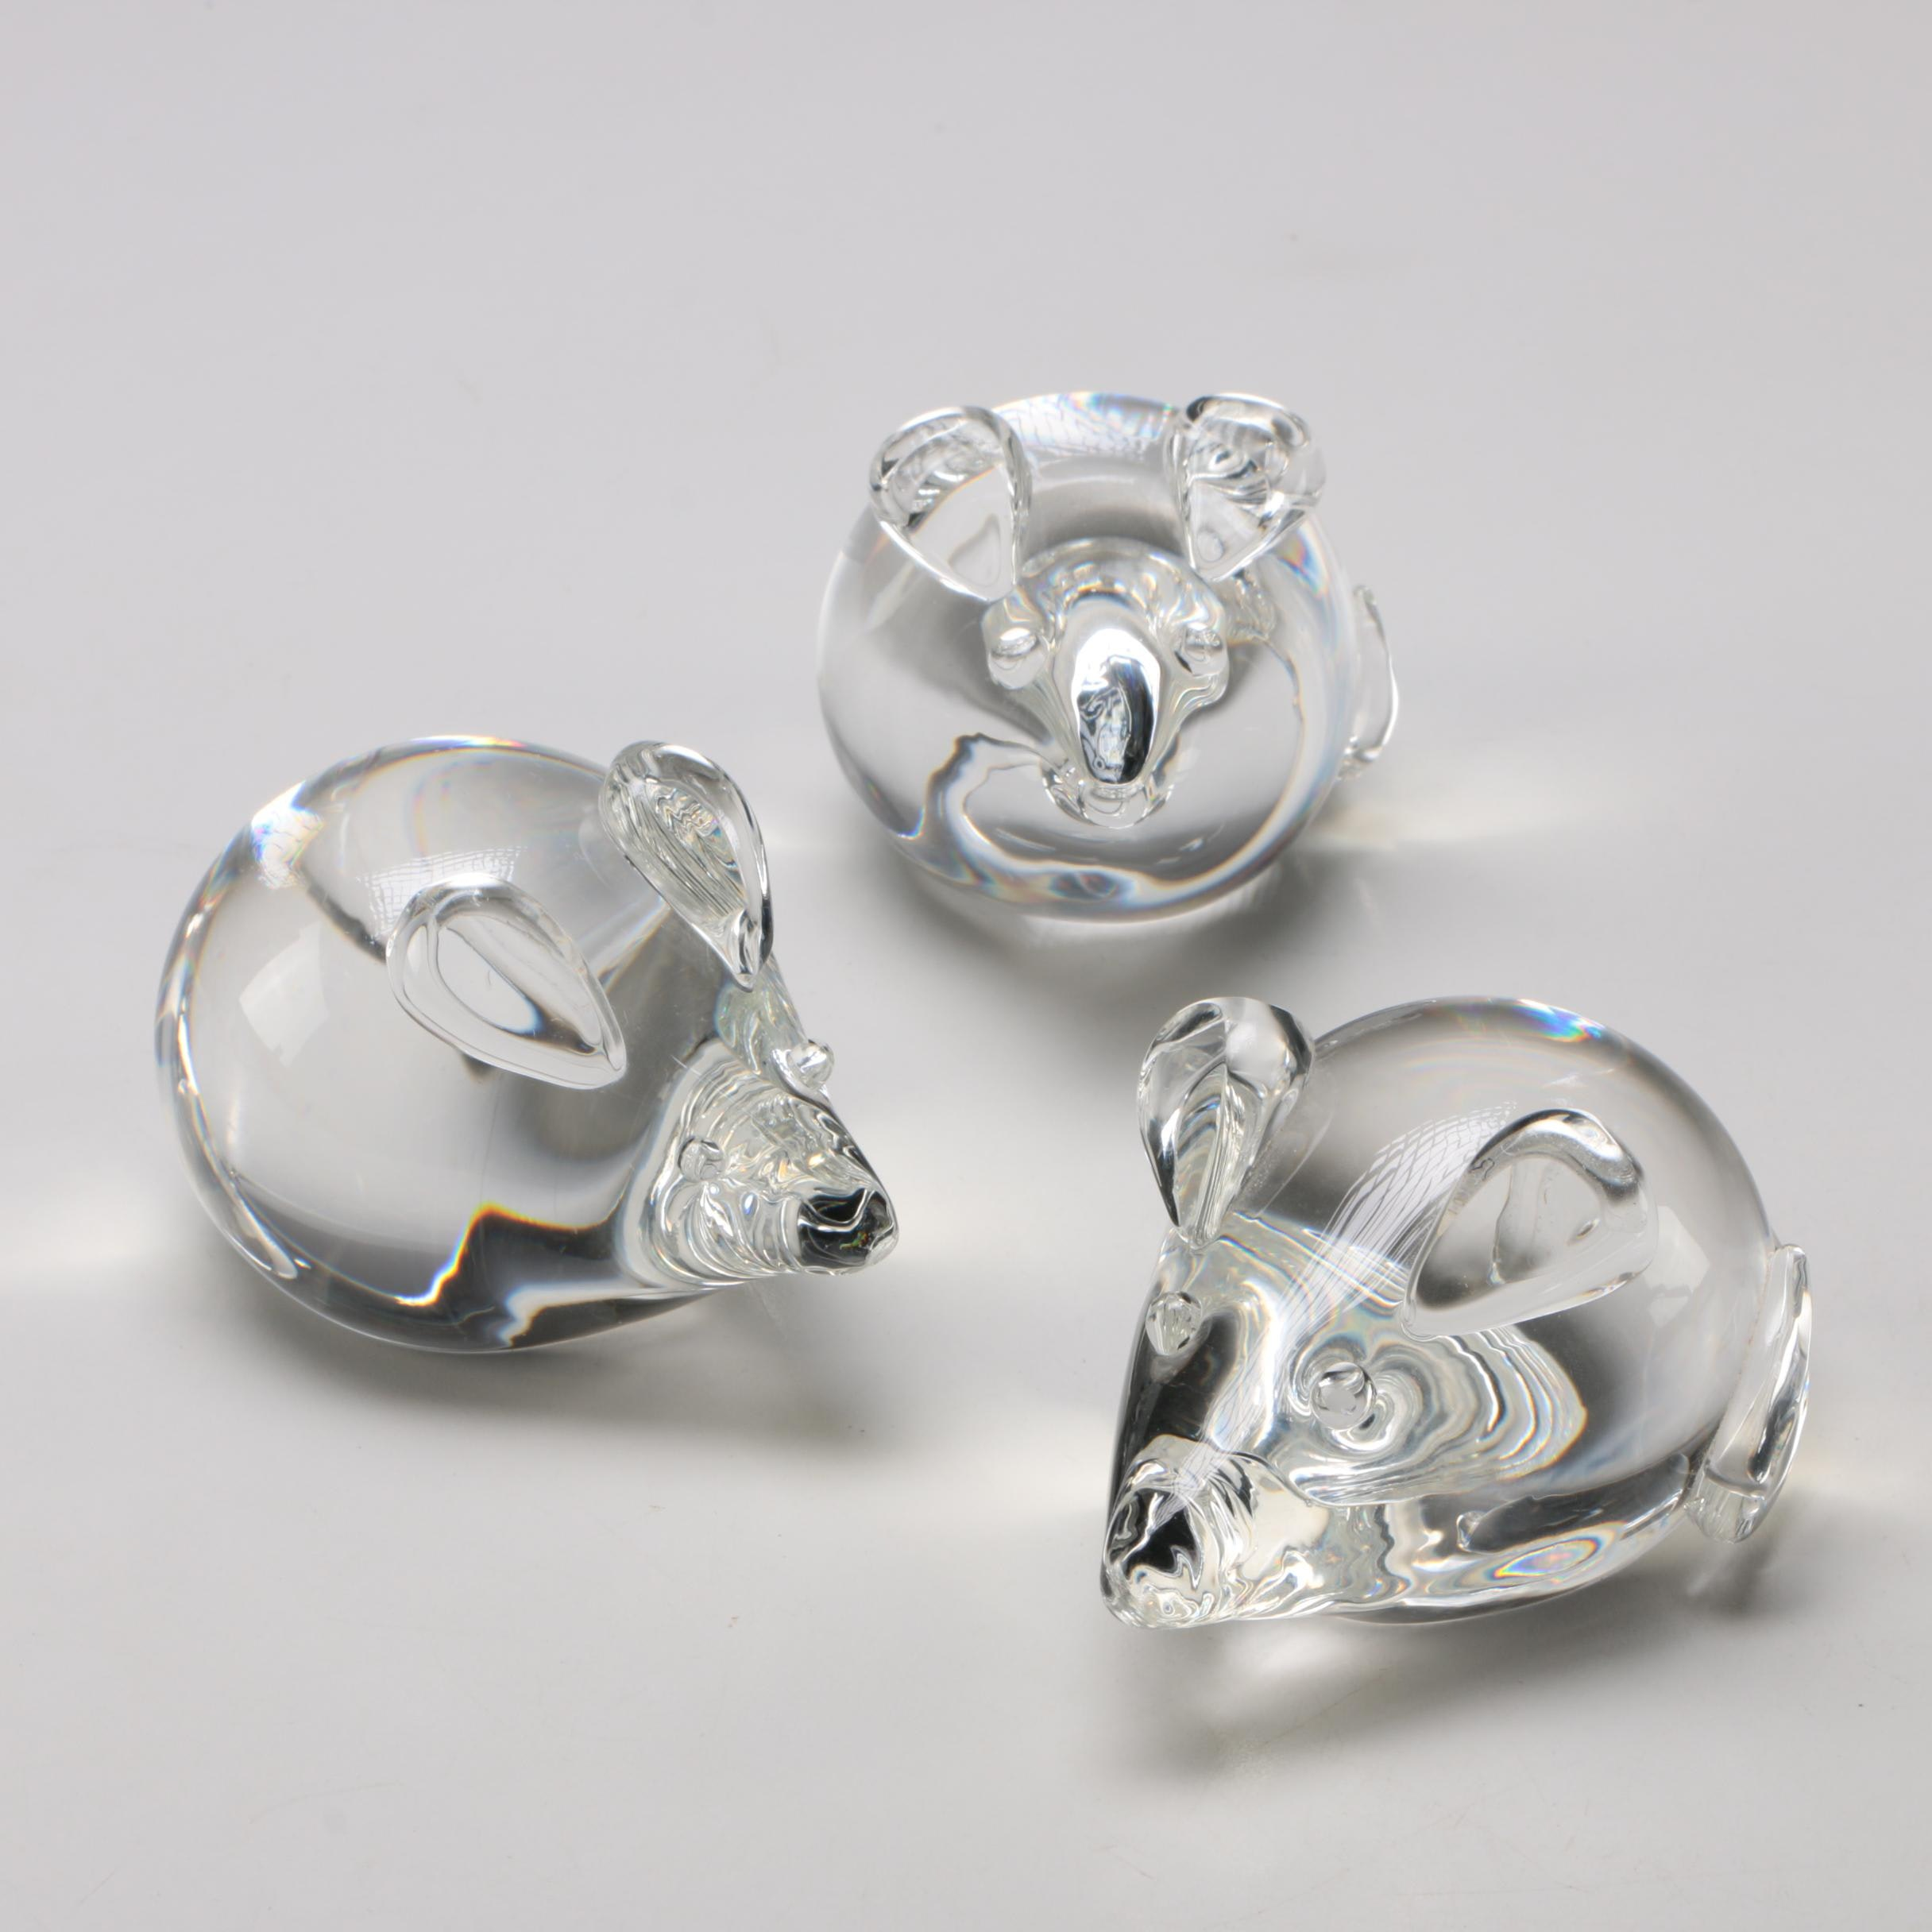 Steuben Art Glass Mice Figurines/Paperweights Designed by Lloyd Atkins, 1975